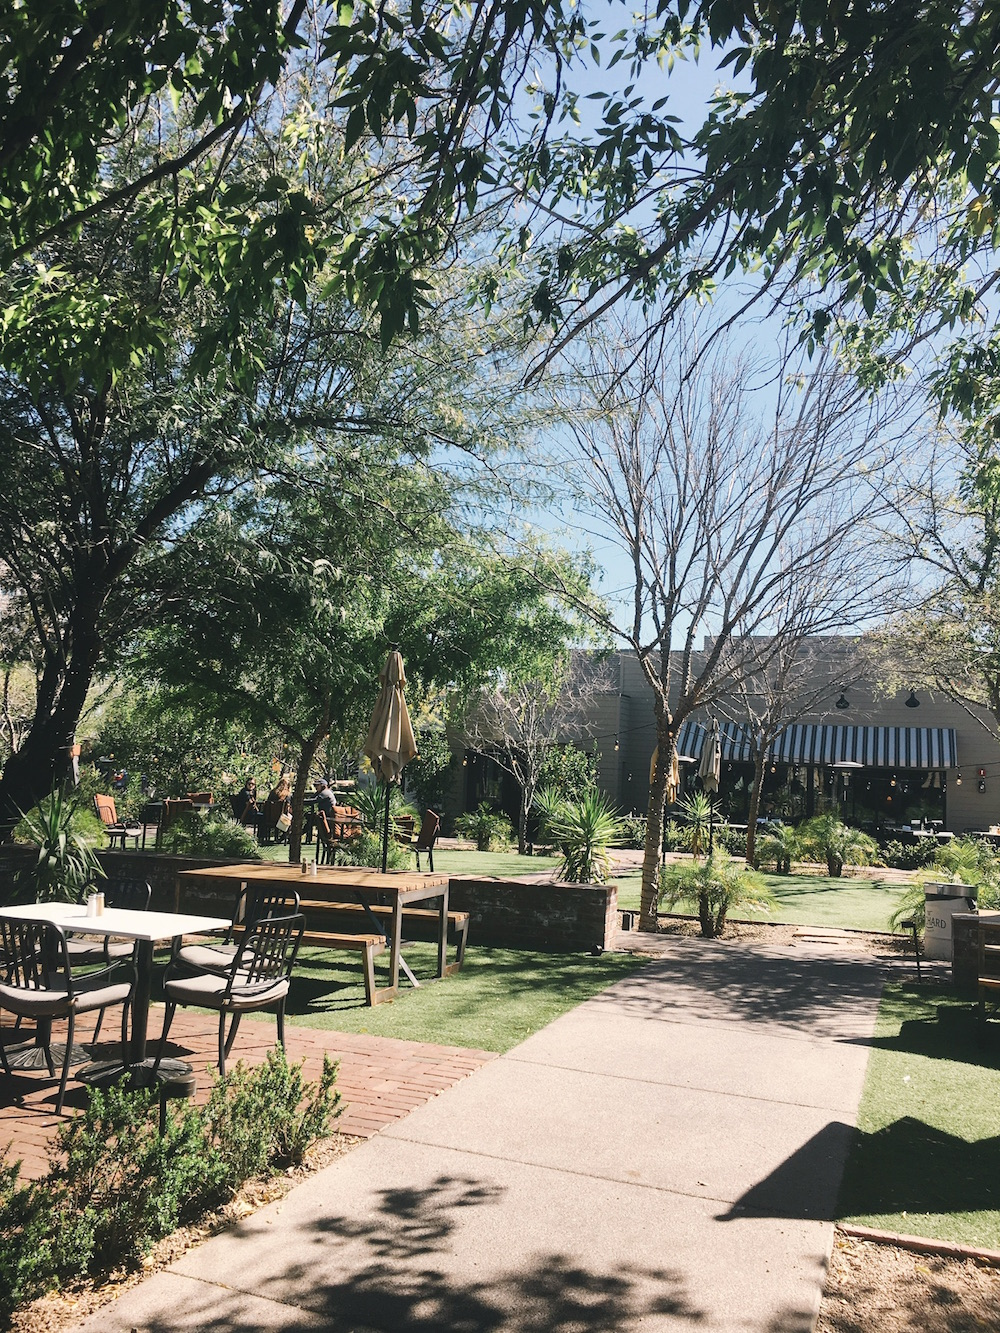 Picnic tables in grassy area in Arizona